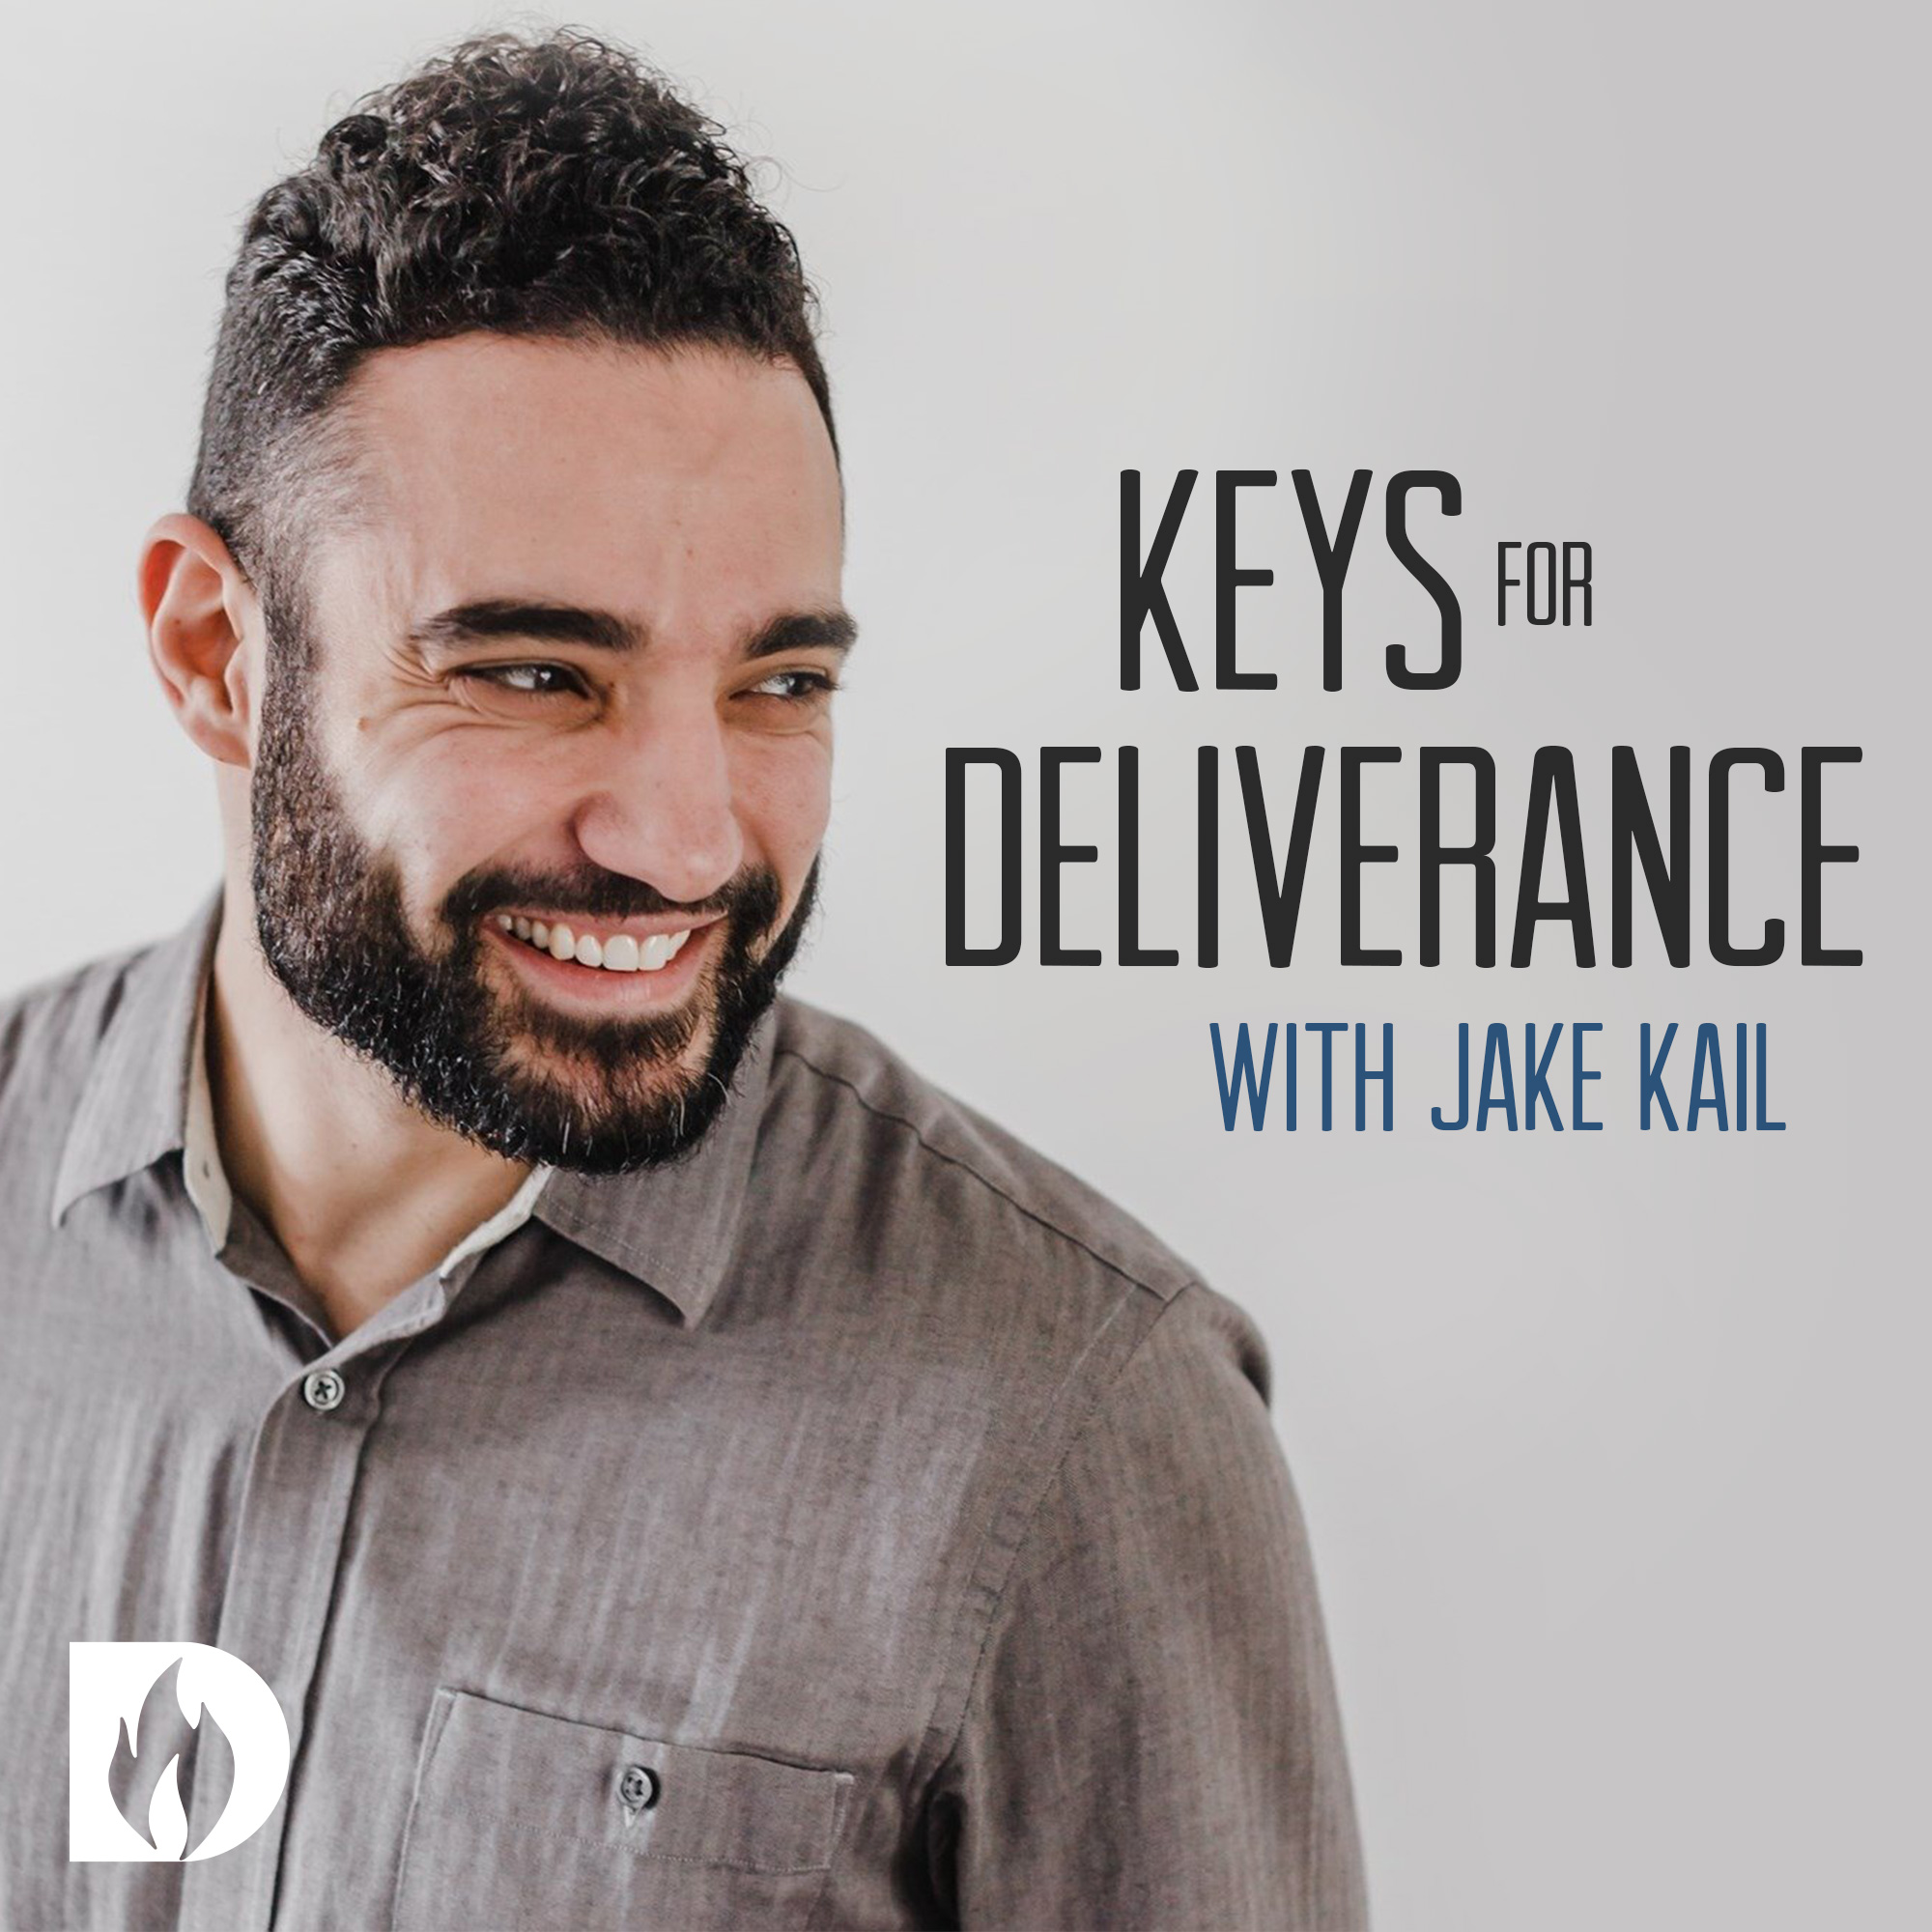 63: The Difference Between Authority and Power – And Why We Need Both